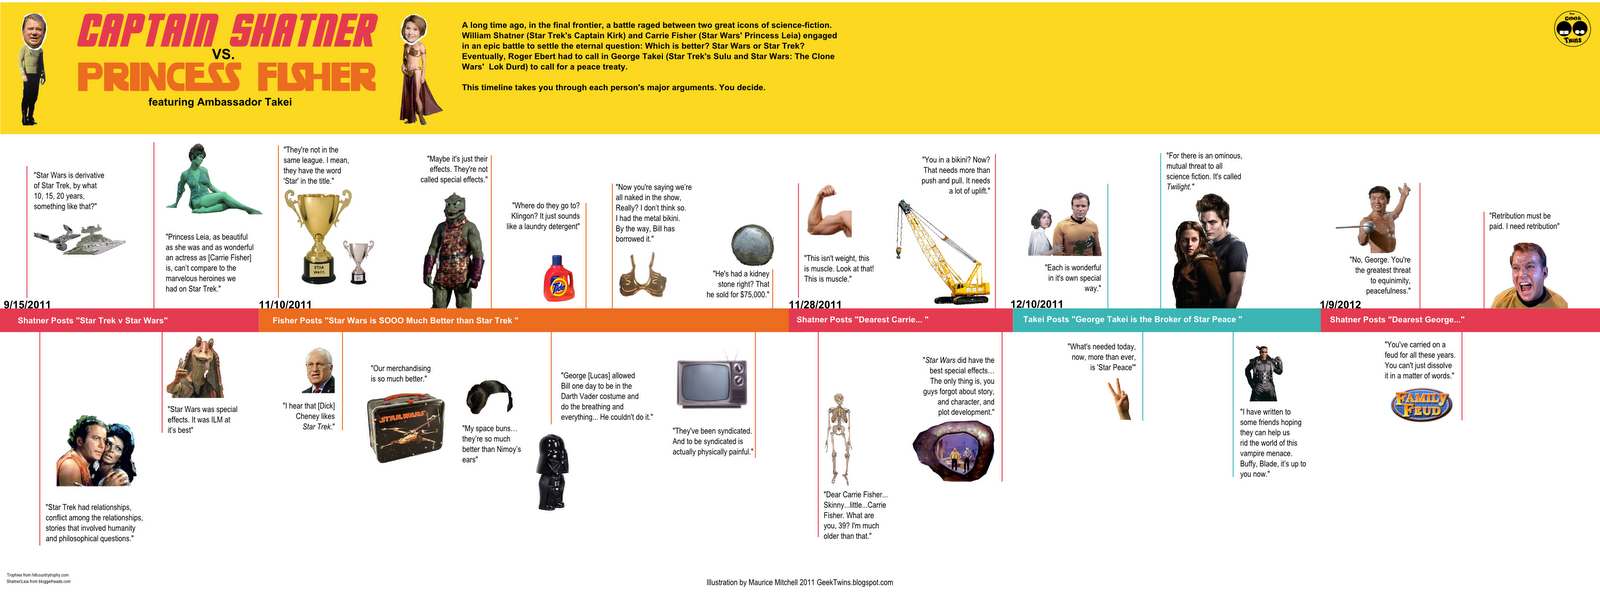 vs william shatner visual timeline infographic the geek twins